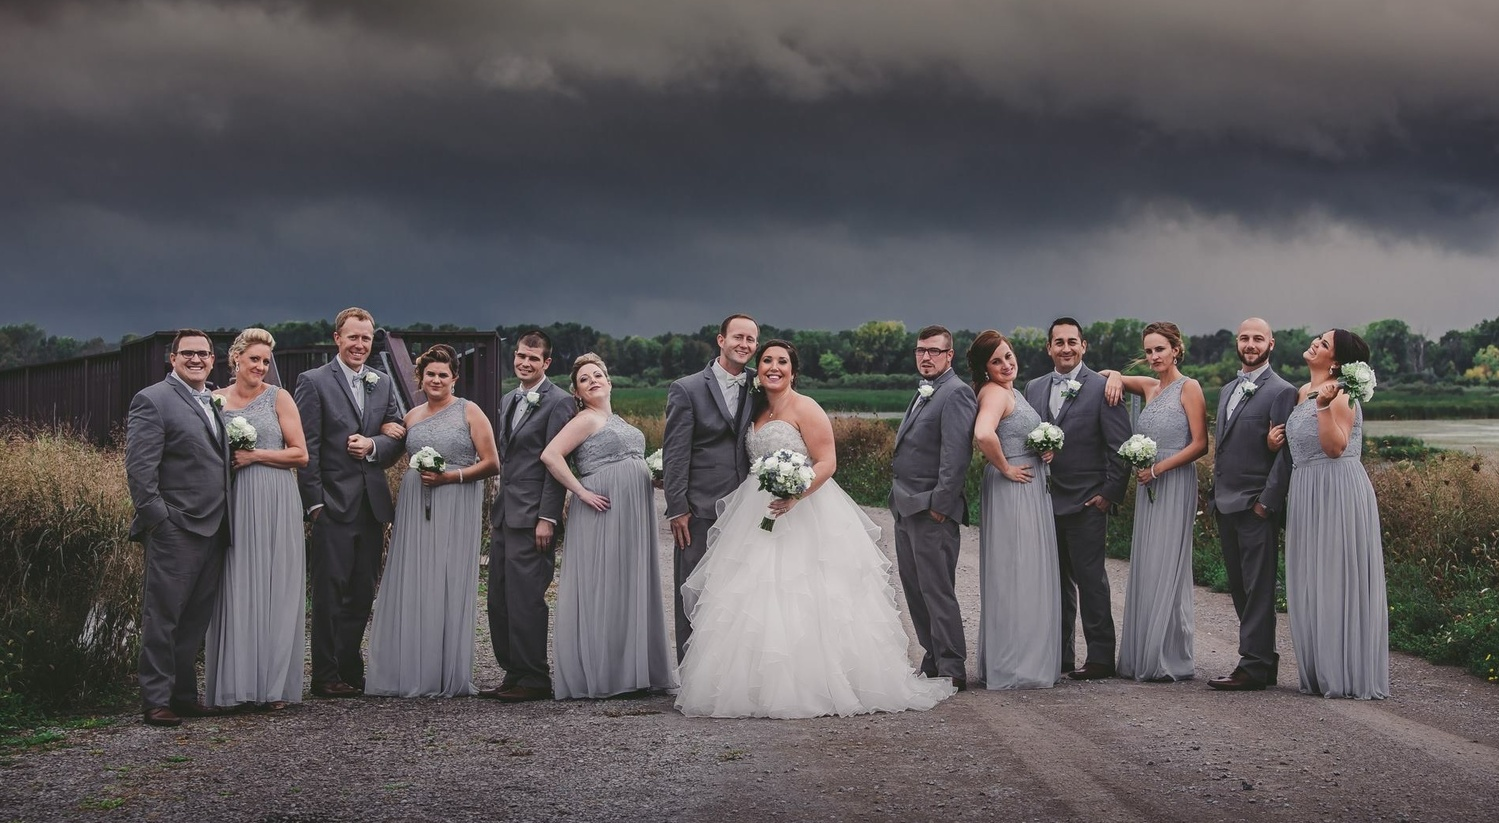 Bridal party by shelley vinson